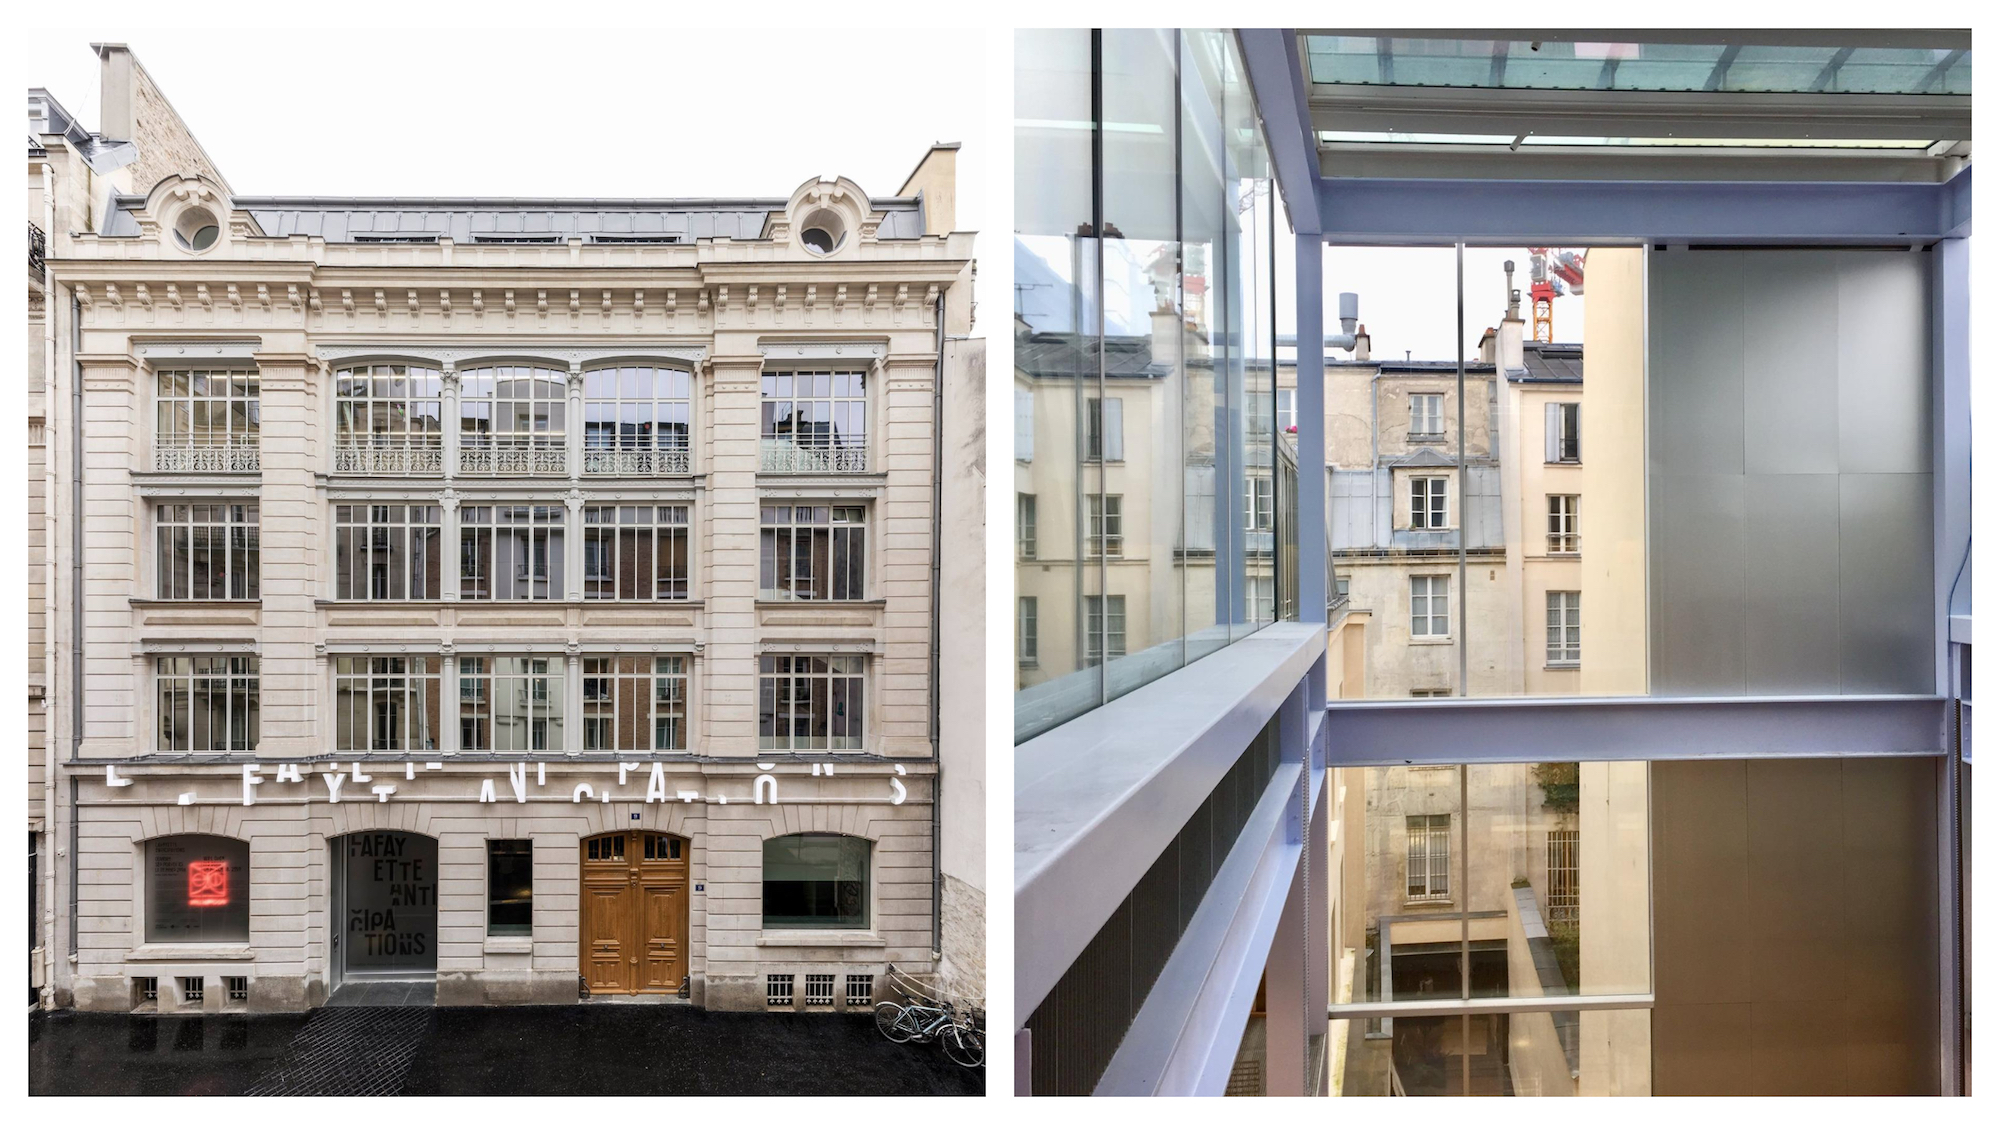 The building of new Paris contemporary art gallery and artist residency, Lafayette Anticipations in the Paris (left). Paris rooftop views from inside the gallery (right).